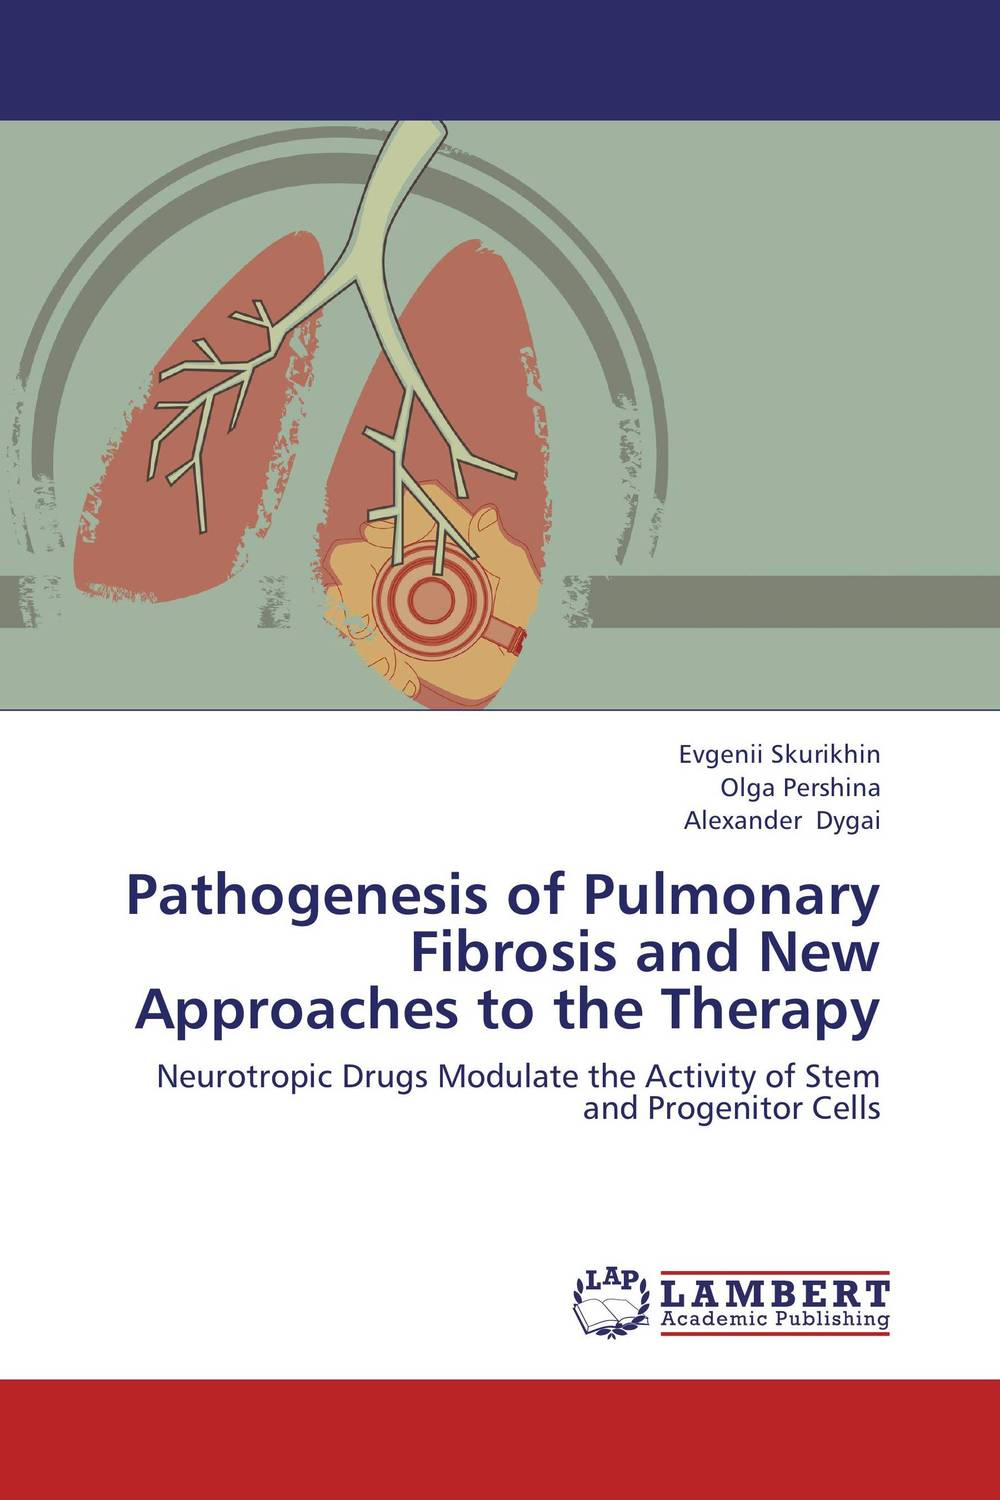 Pathogenesis of Pulmonary Fibrosis and New Approaches to the Therapy high quantity medicine detection type blood and marrow test slides